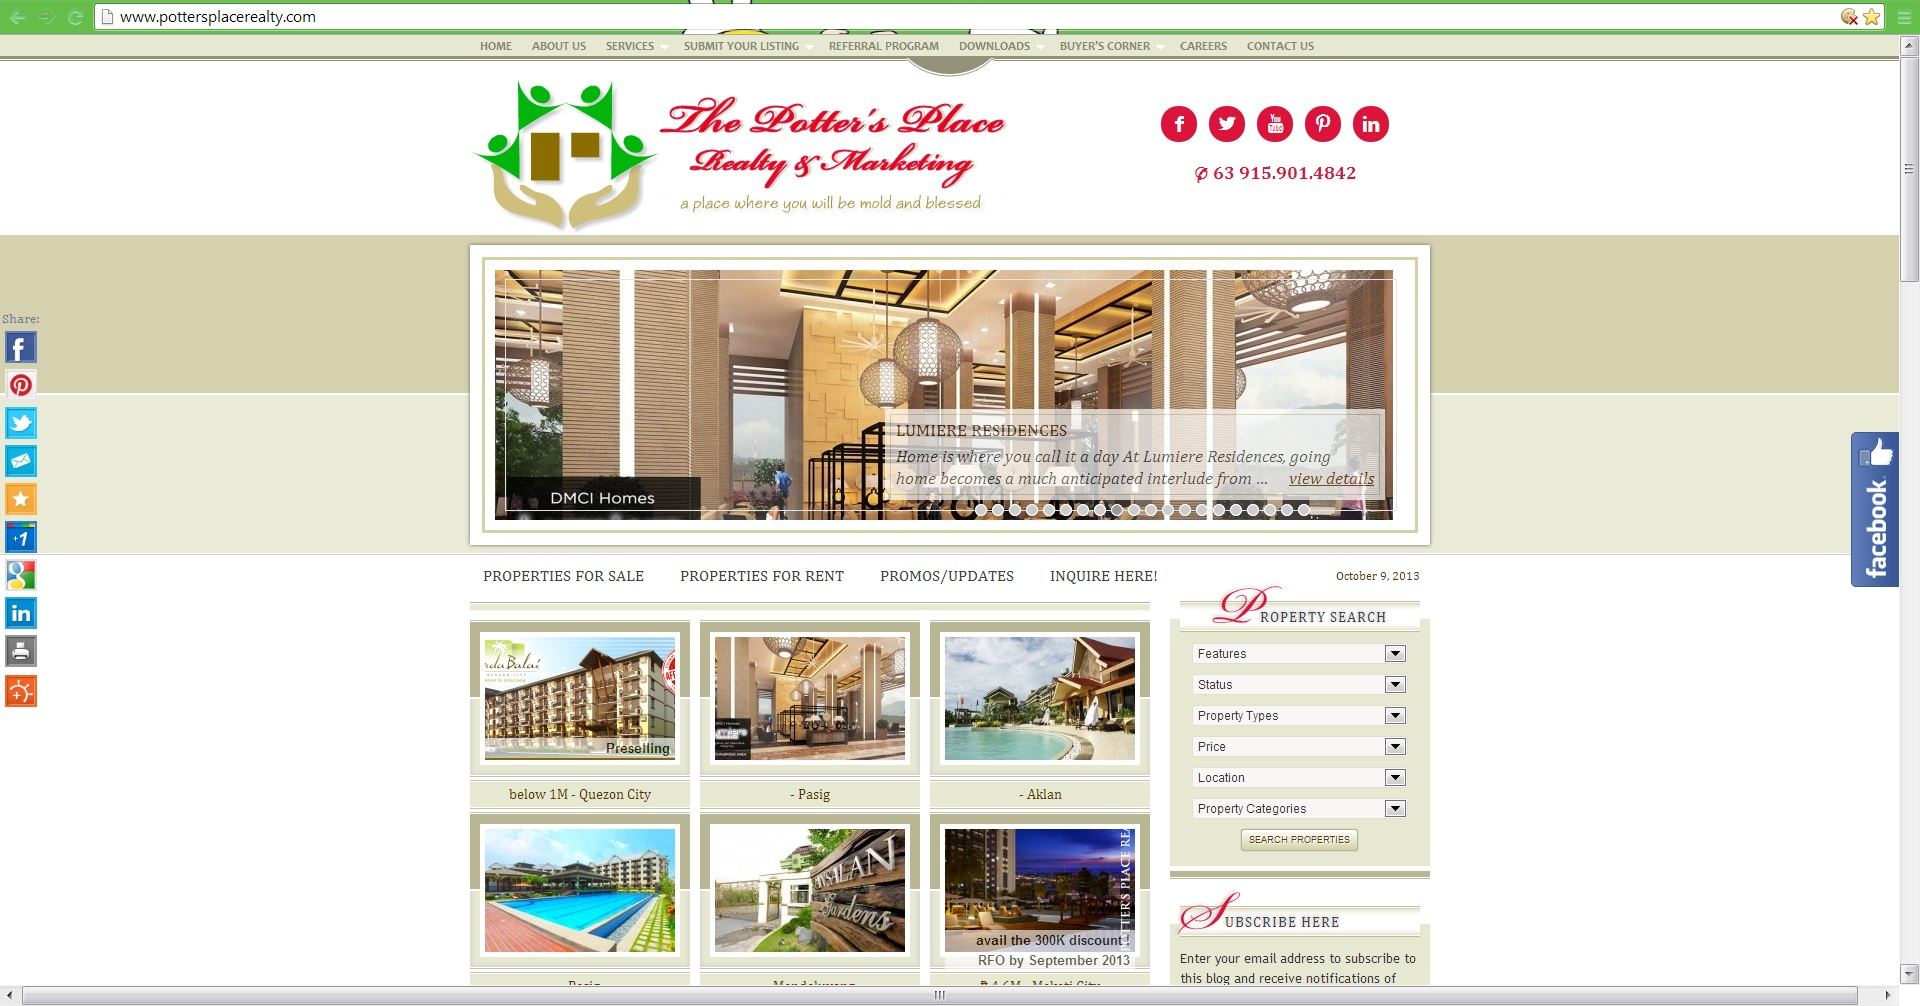 The Potter's Place Realty & Marketing official website